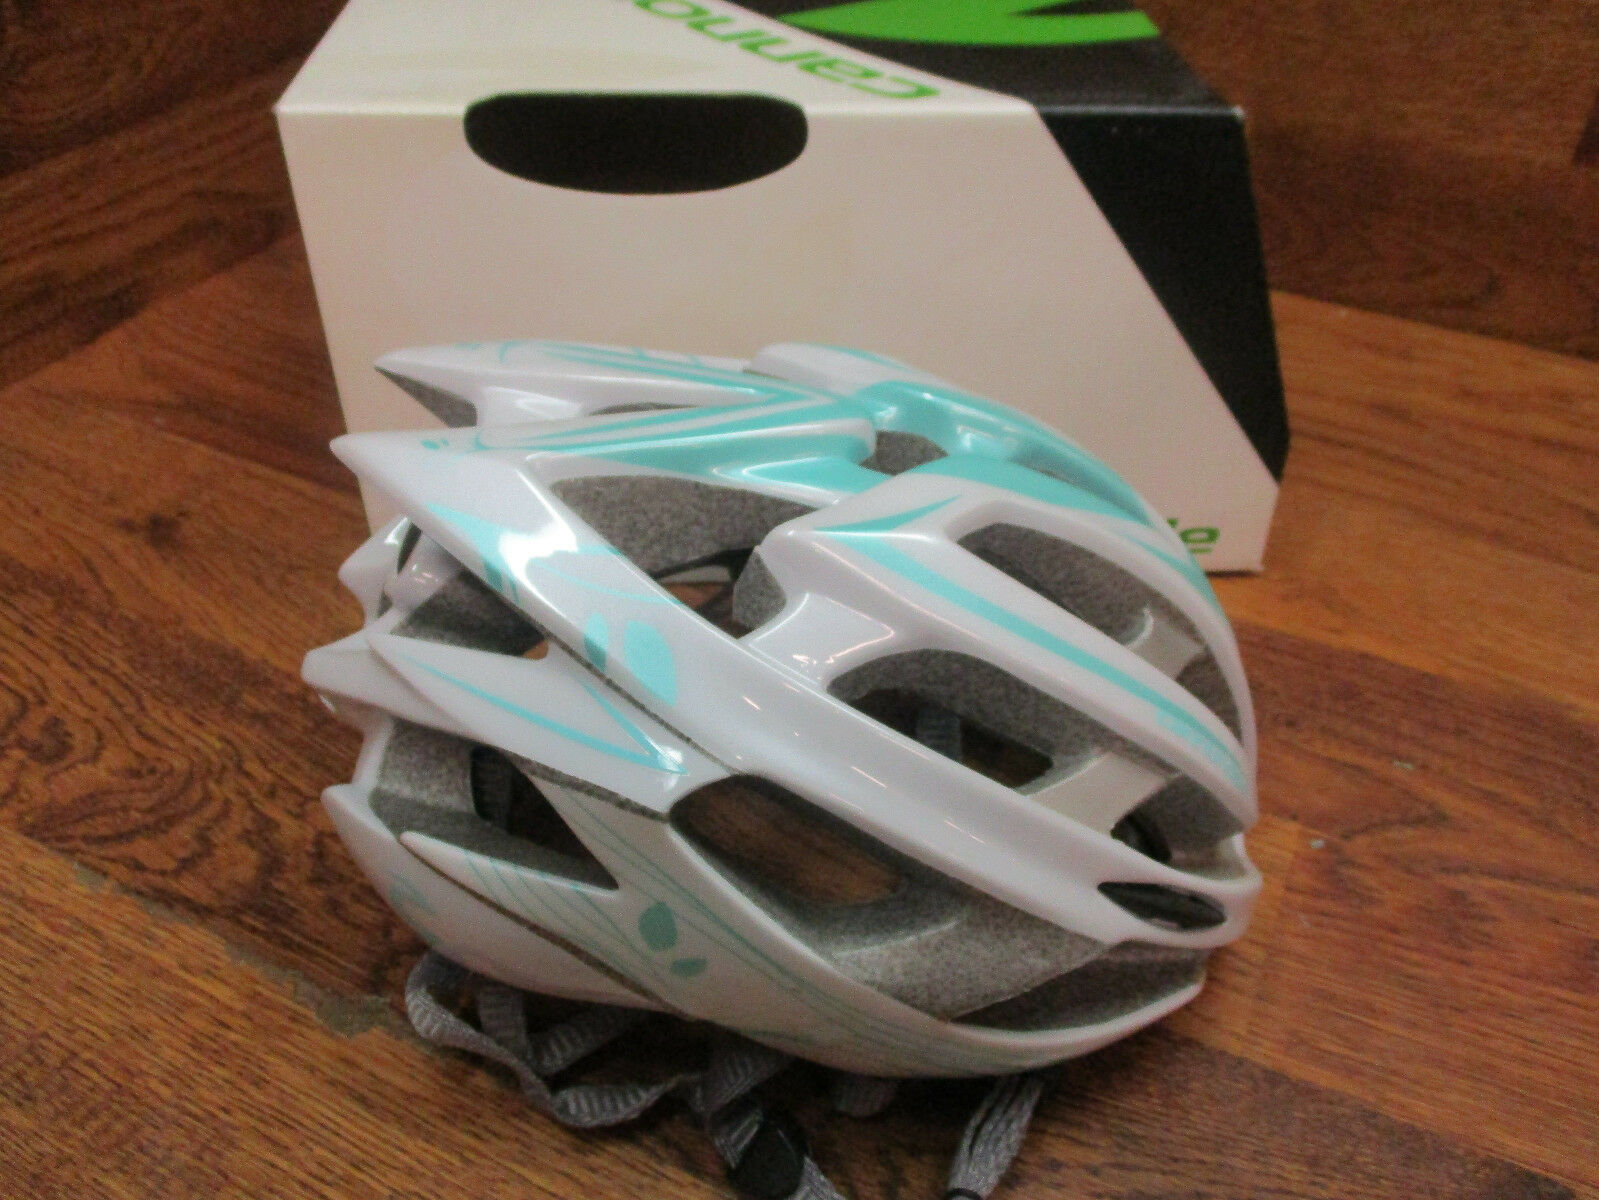 CANNONDALE TERAMO BICYCLE BIKE CYCLING ROAD HELMET  WHITE TEAL L-XL 58-62CM WOMEN  more discount